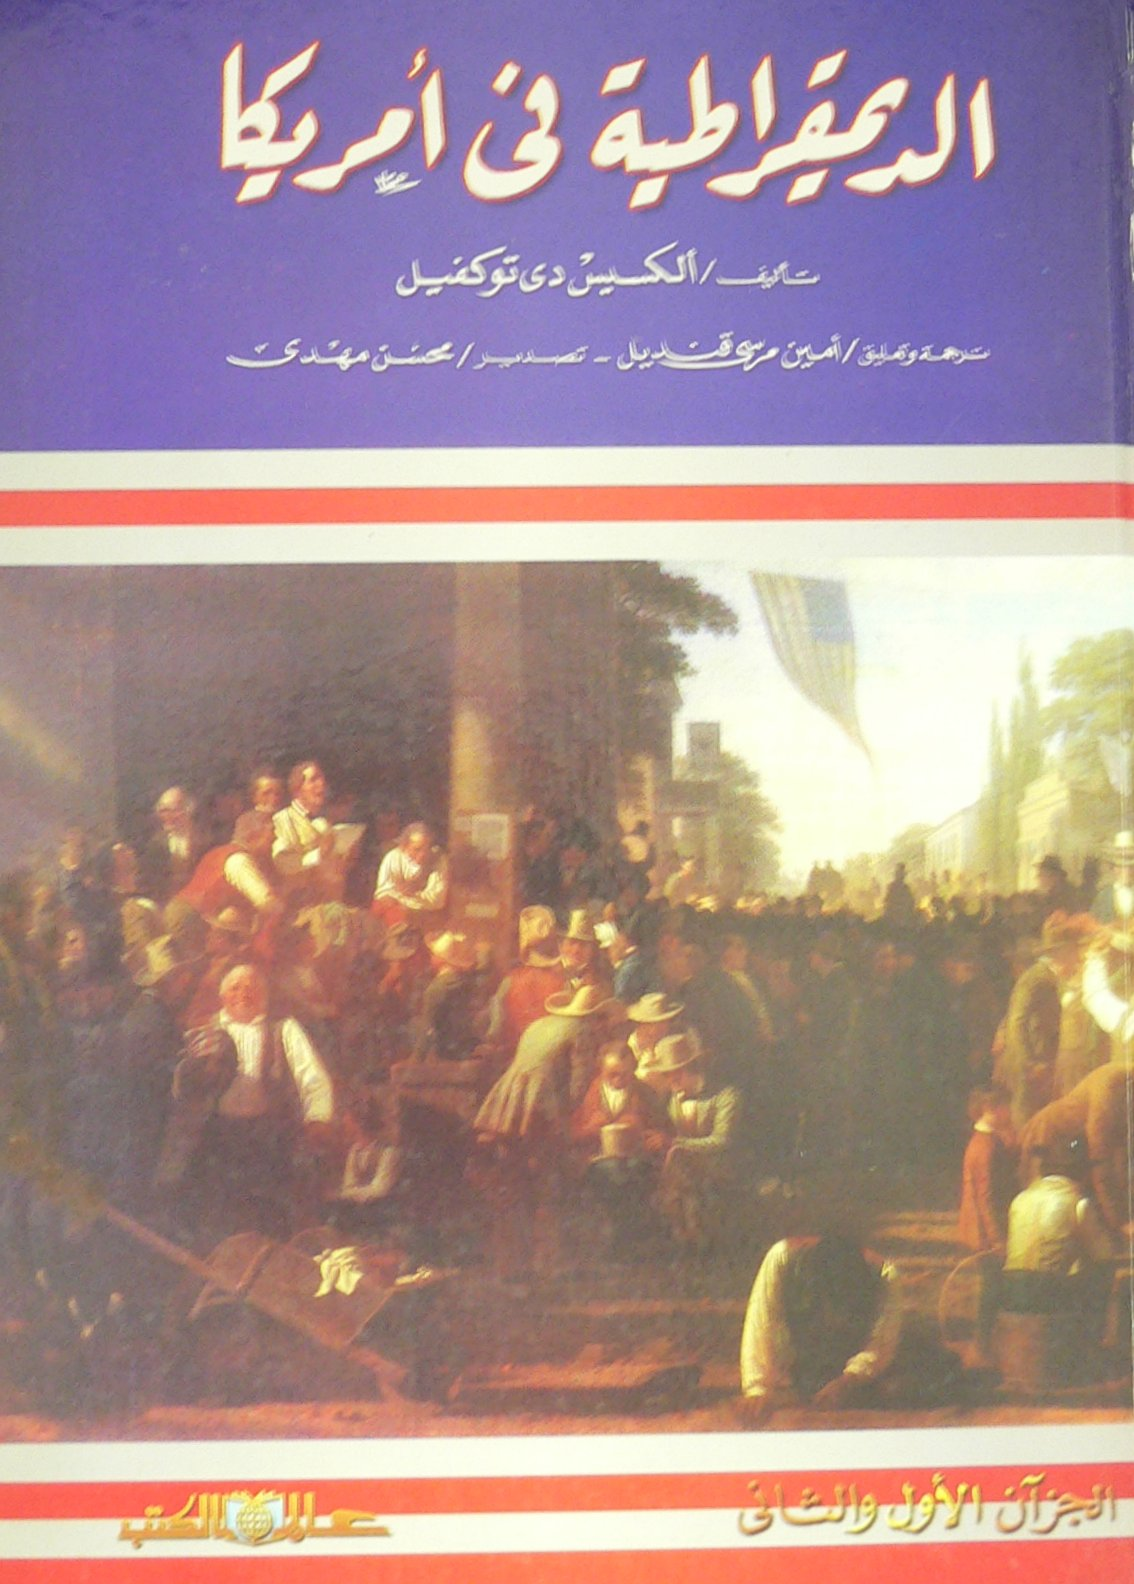 tocqueville democracy in america essays Democracy in america is one of those classic texts which many quote but few actually read even since this reviewer was an undergraduate its relevance has declined as the context in which it was set has changed beyond recognition tocqueville travelled to the united states with his aristocratic friend.